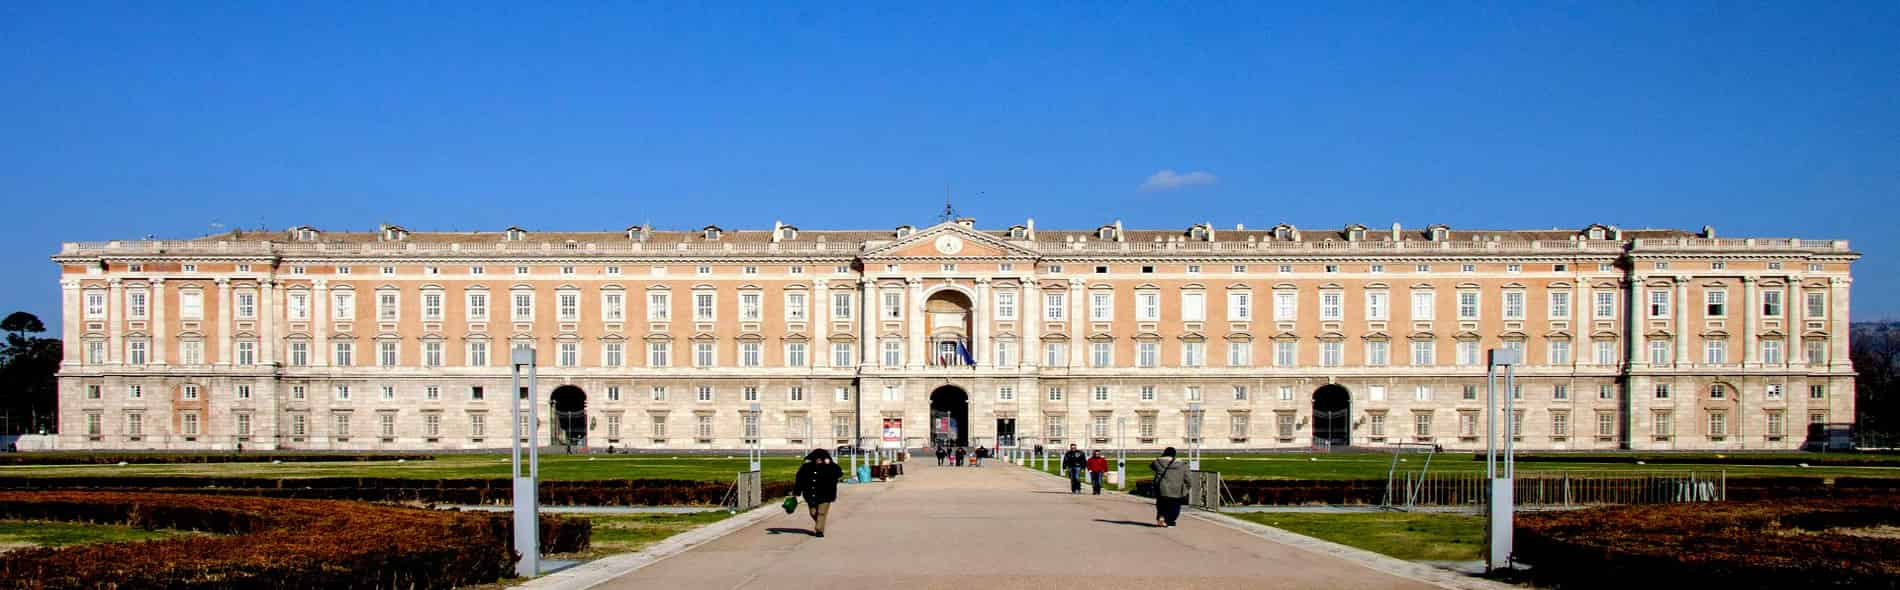 Walking Guided Tour of the Royal Palace of Caserta